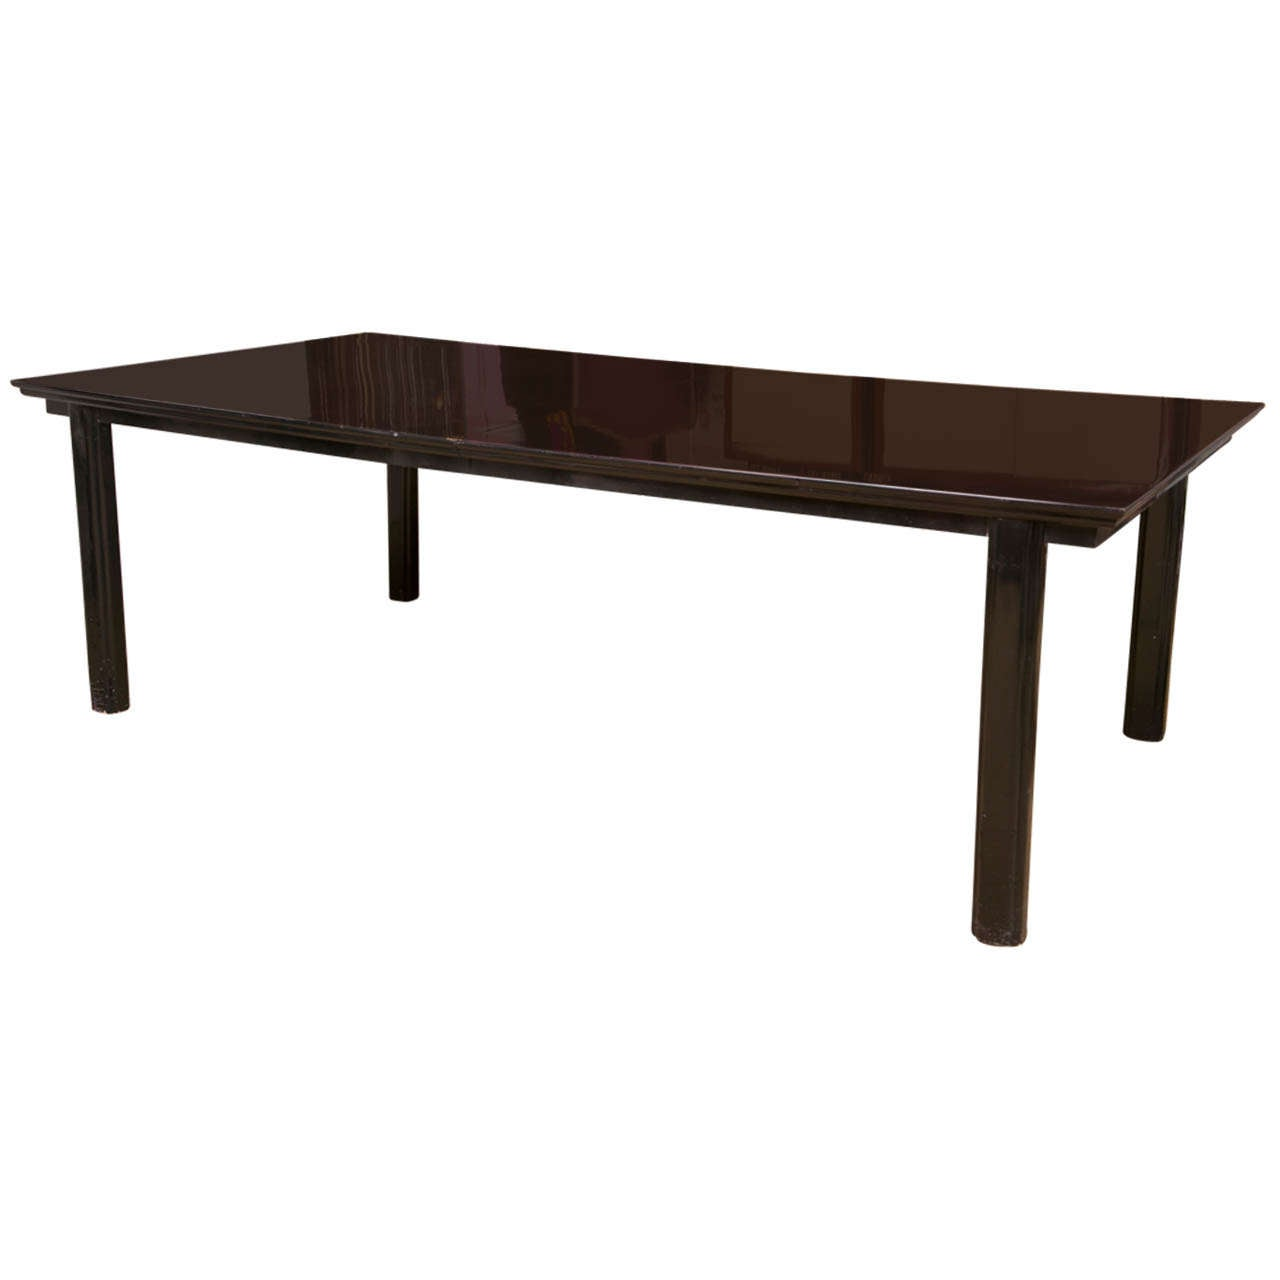 Black Lacquer Dining Room Table: Black Lacquer Dining Table For Sale At 1stdibs